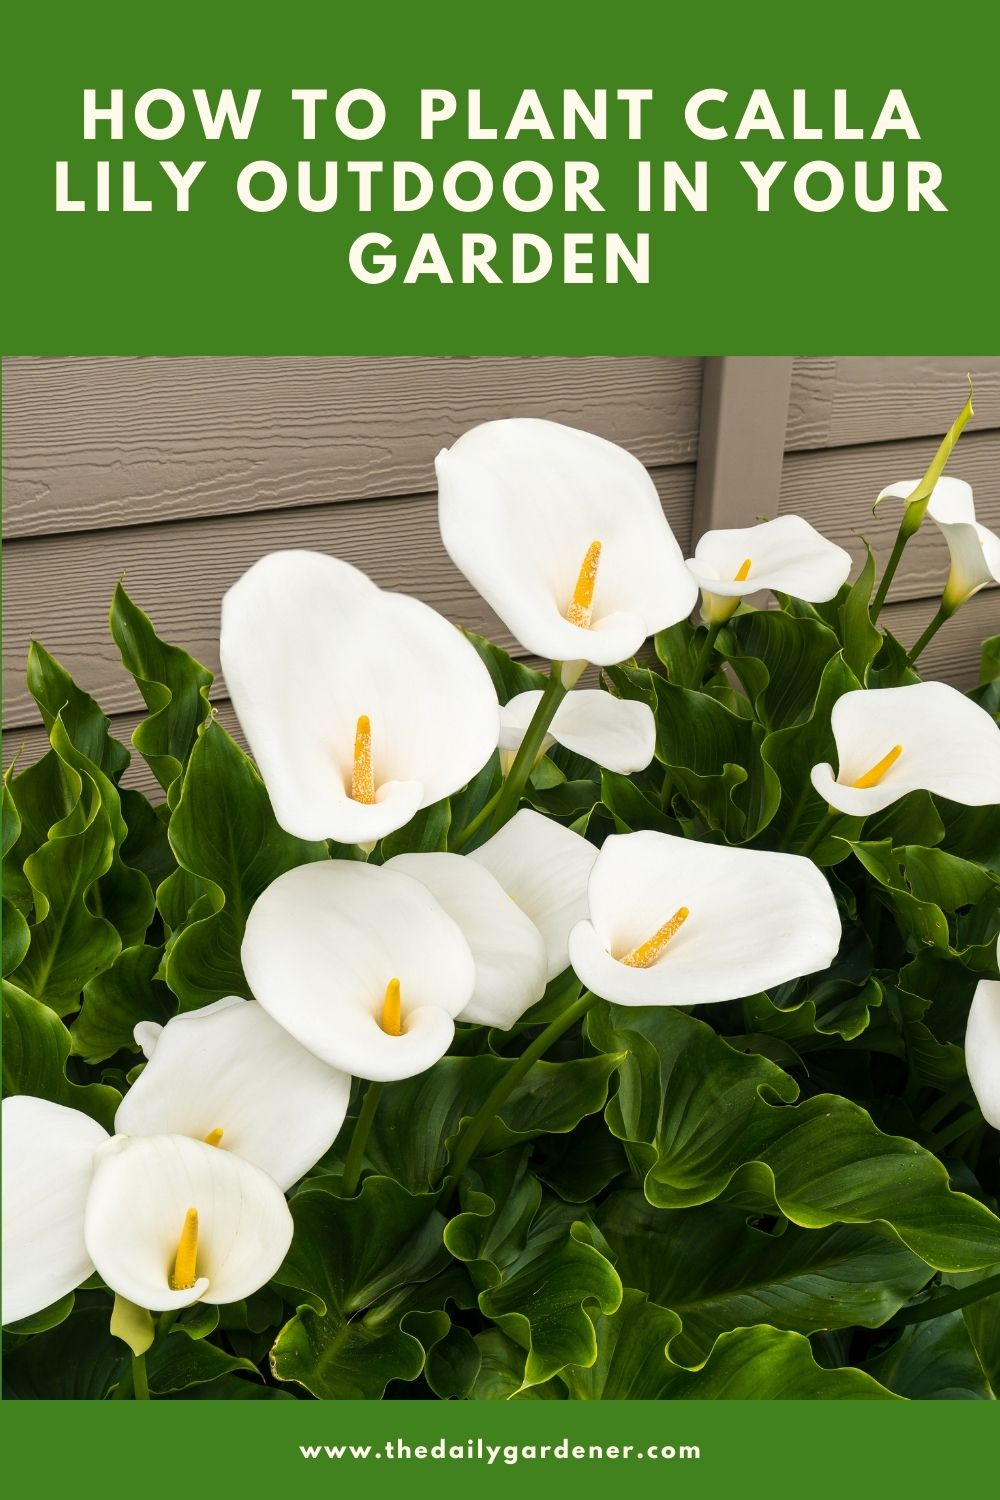 How to Plant Calla Lily Outdoor in Your Garden 1